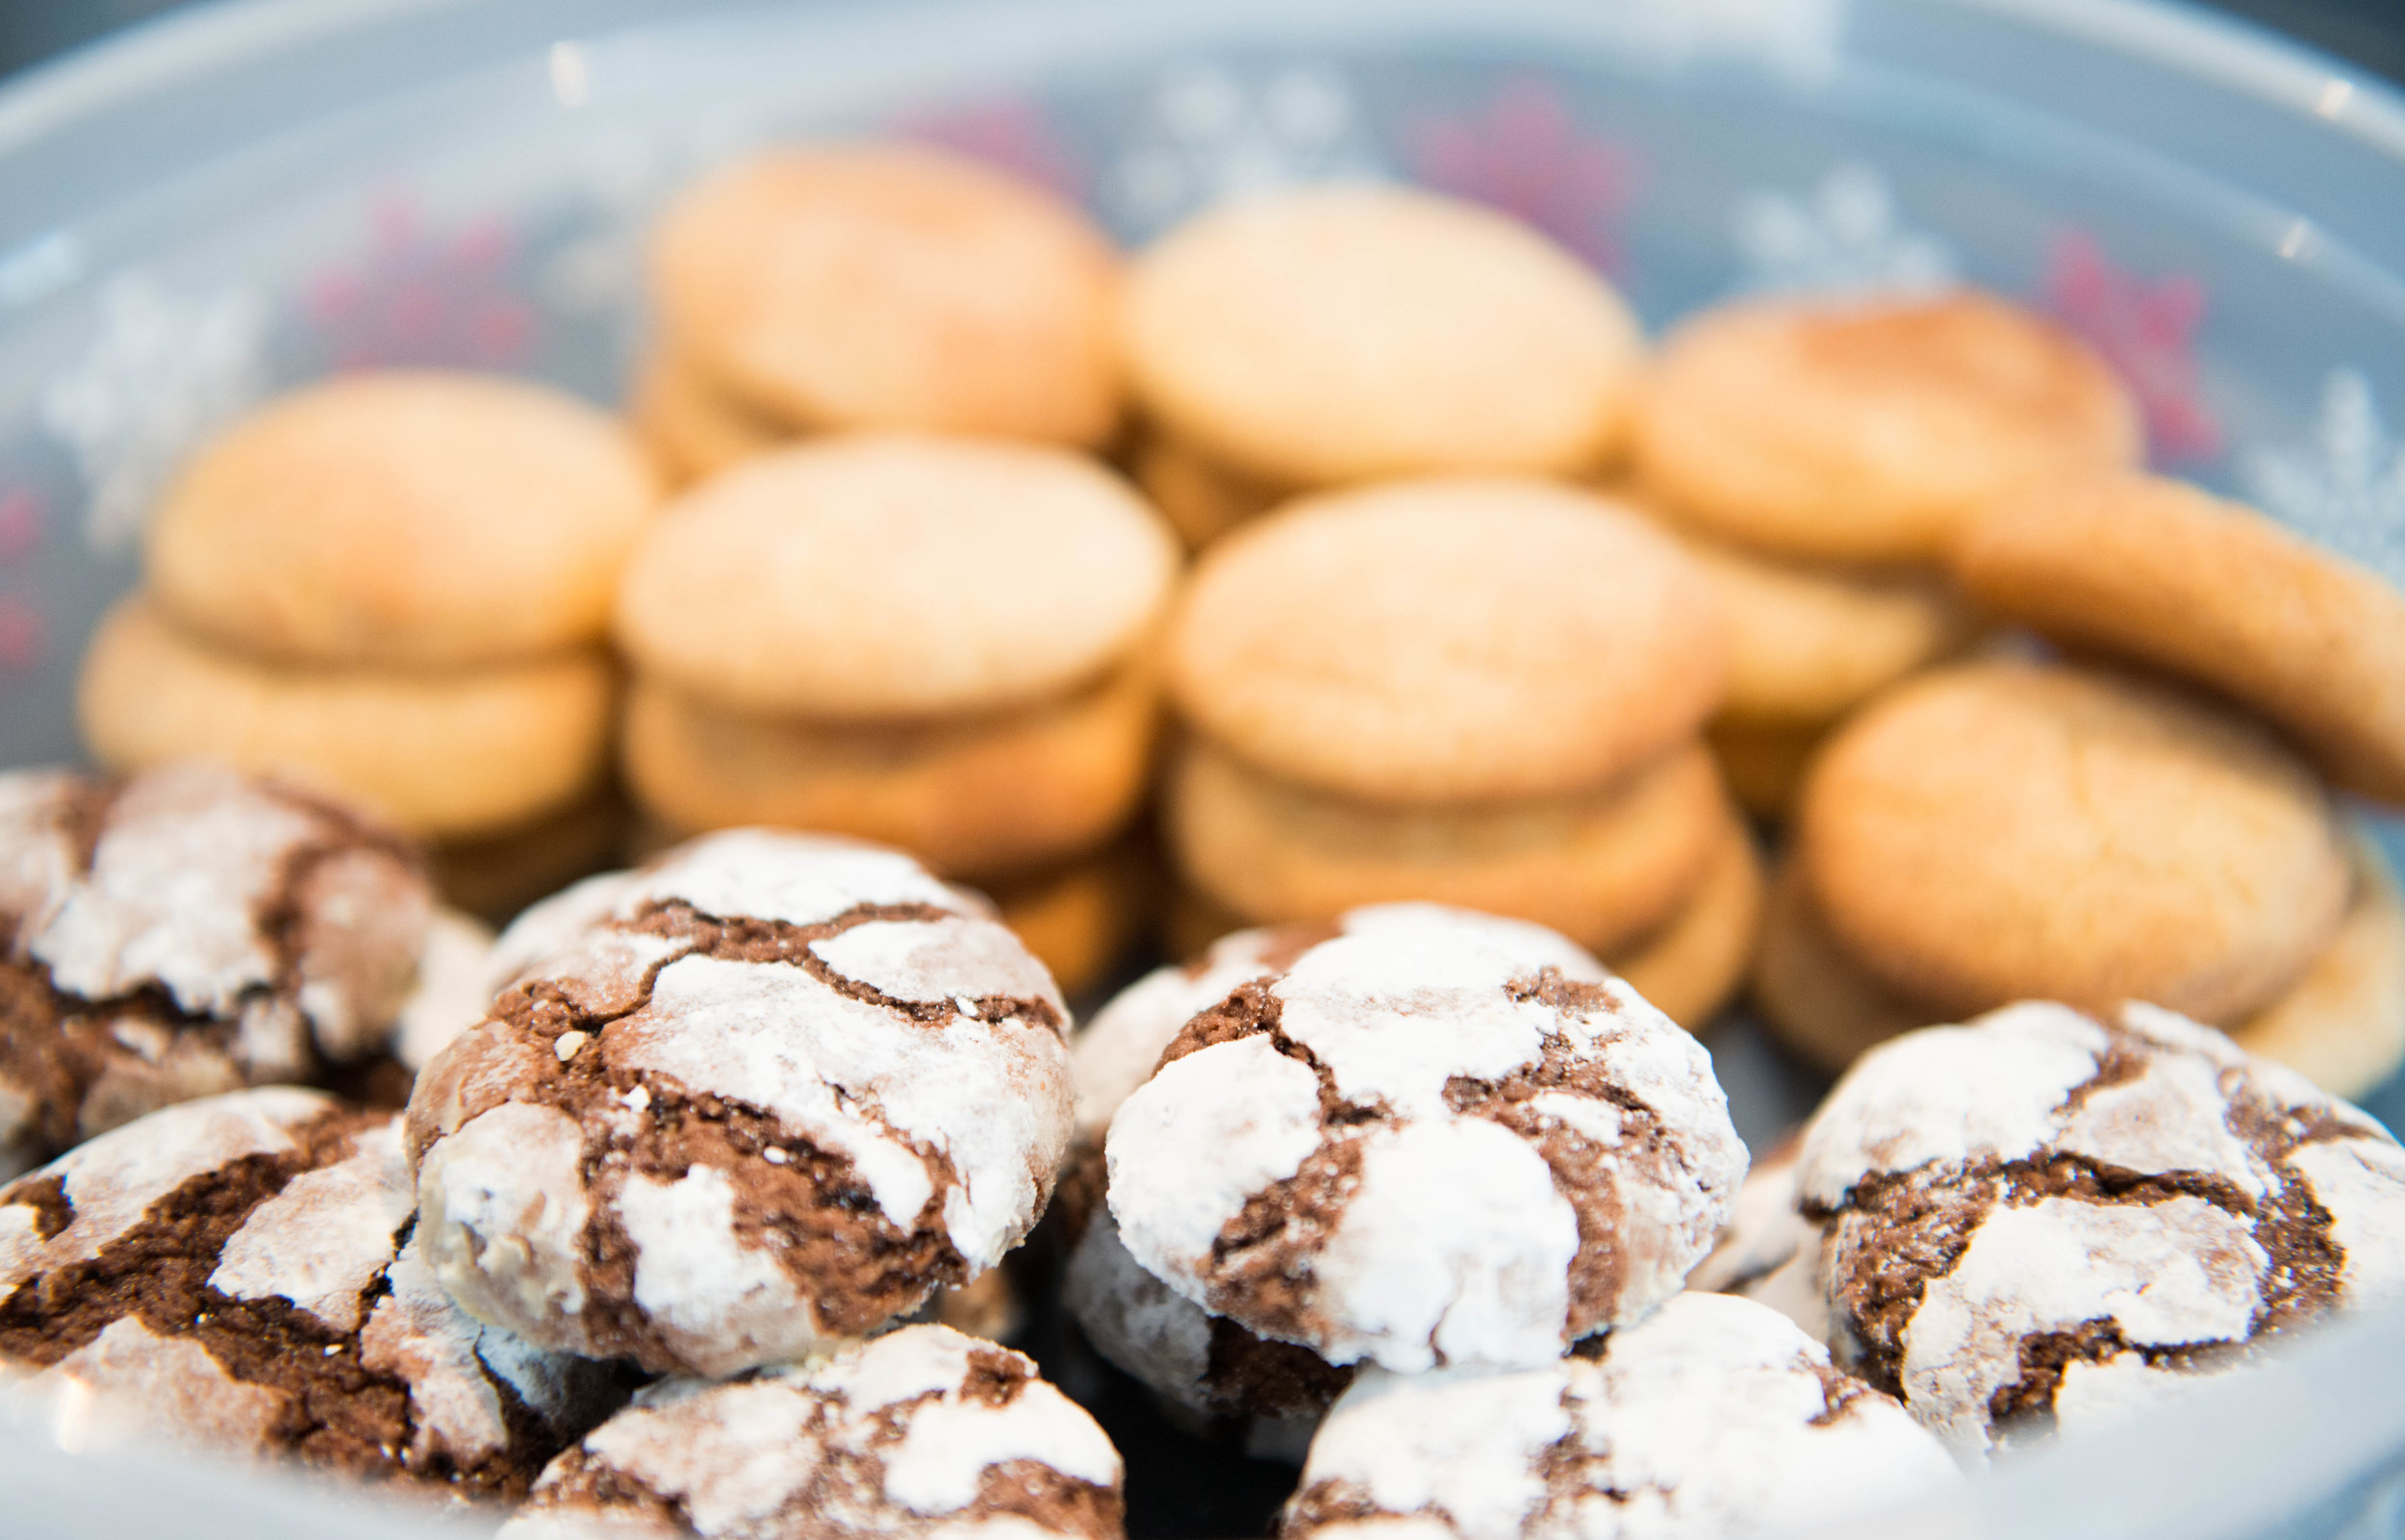 Homemade chocolate crinkle cookies and snickerdoodles - www.lisavillellaphotography.com